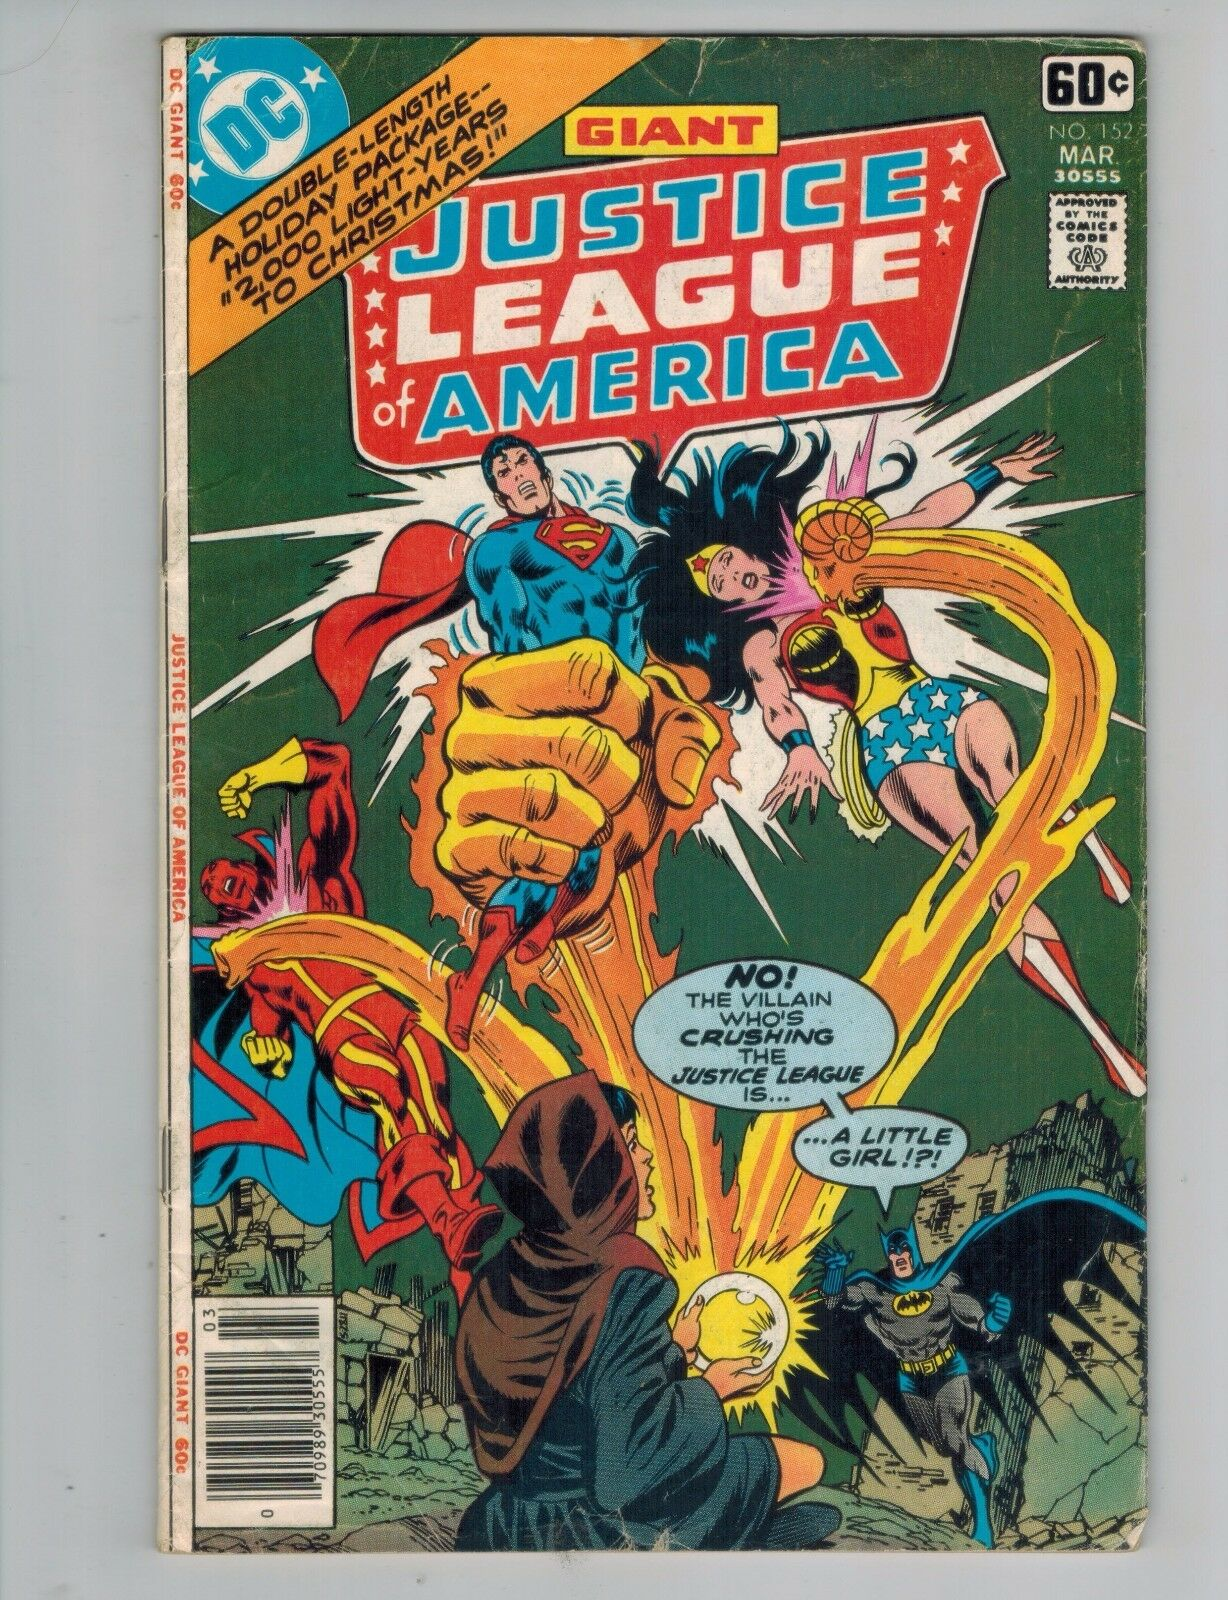 JUSTICE LEAGUE OF America 152 JLA Christmas Issue Giant 1978 VG ...